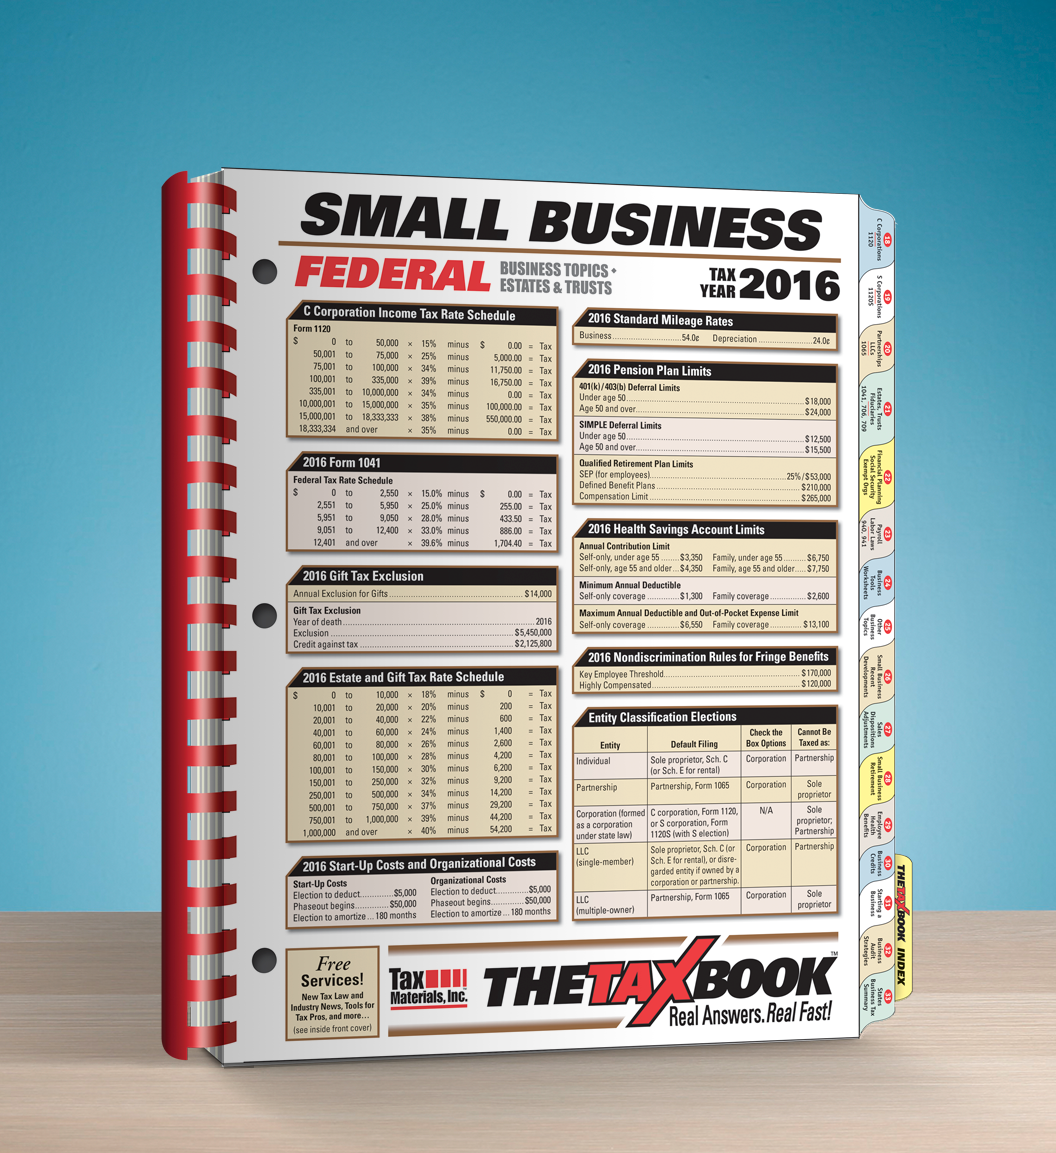 TheTaxBook Small Business Edition (2016) - #3694